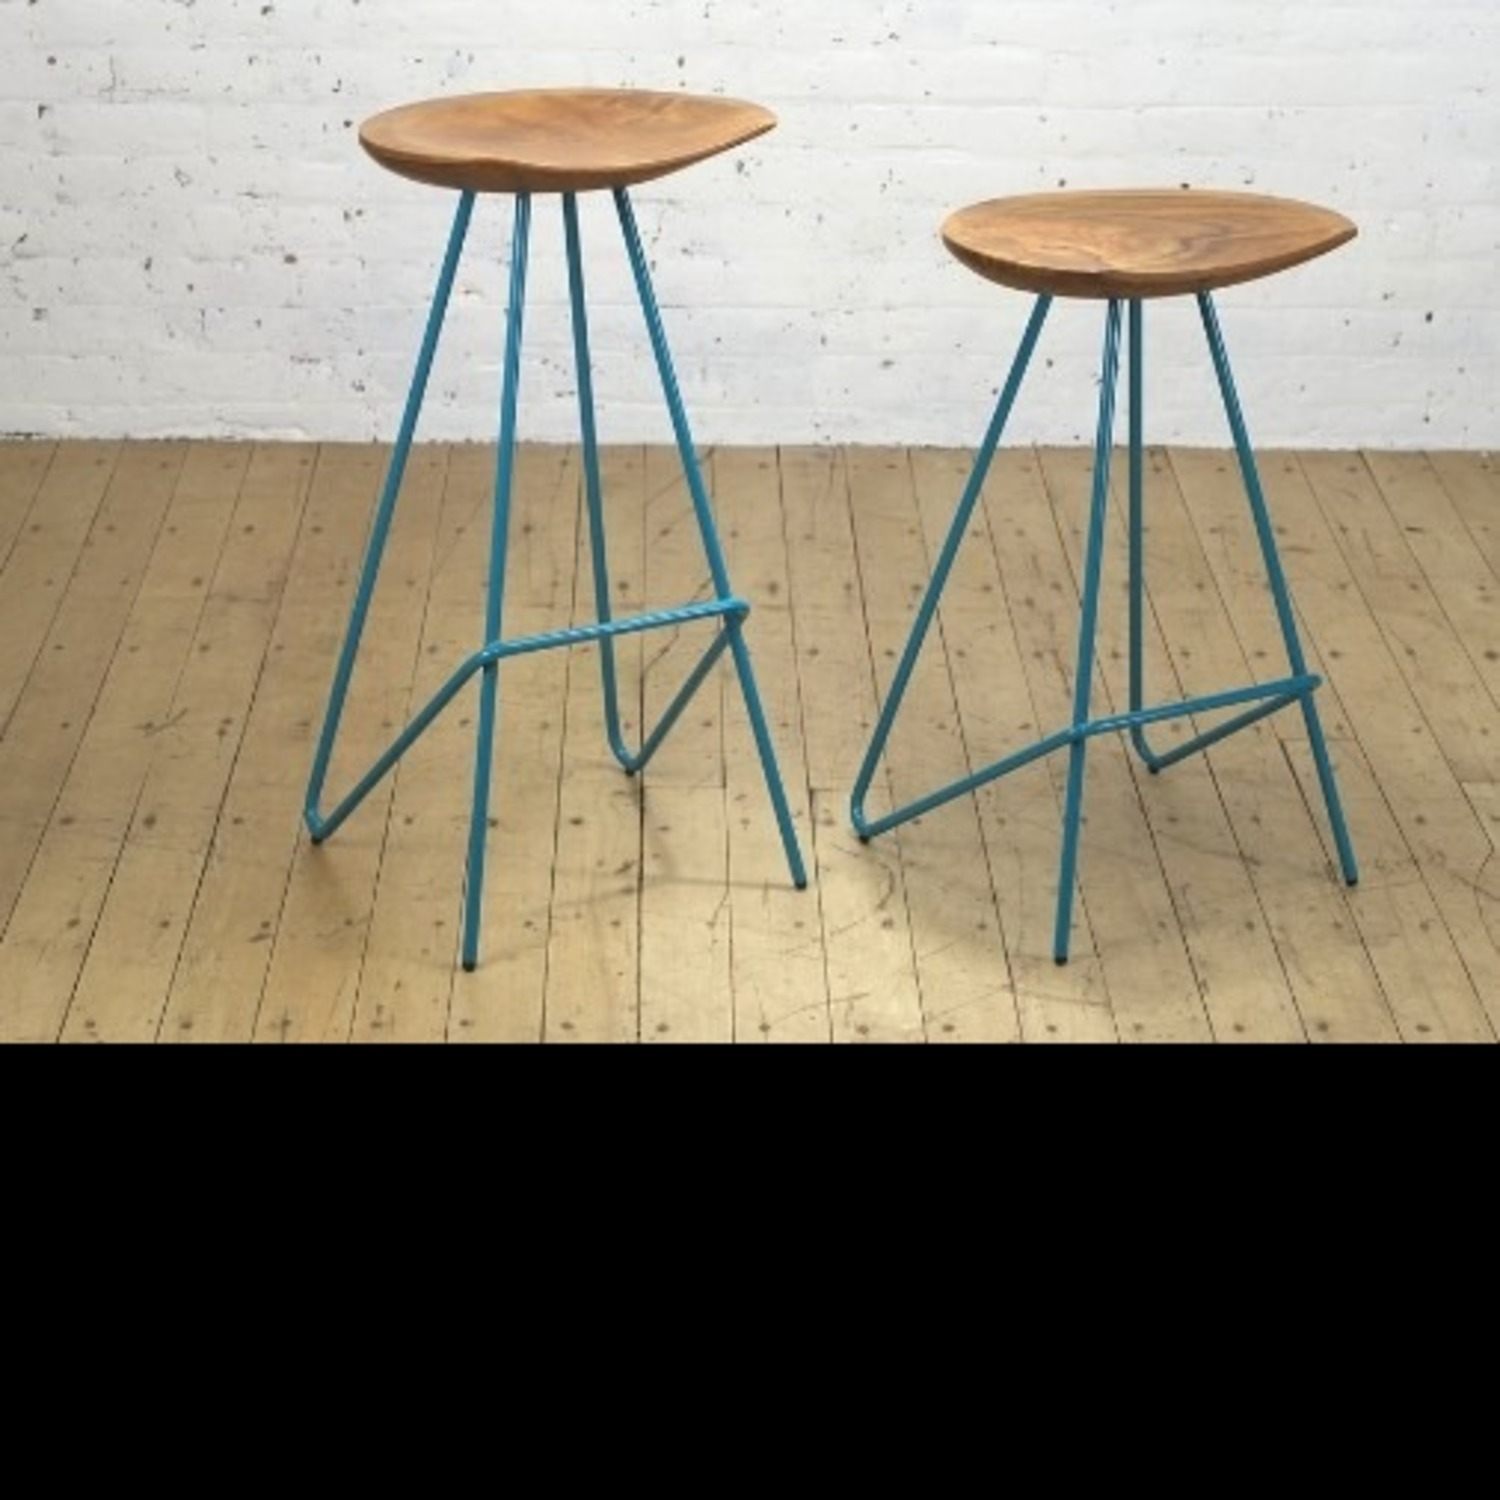 From The Source Perch Counter Stools - Set of 2 - image-9